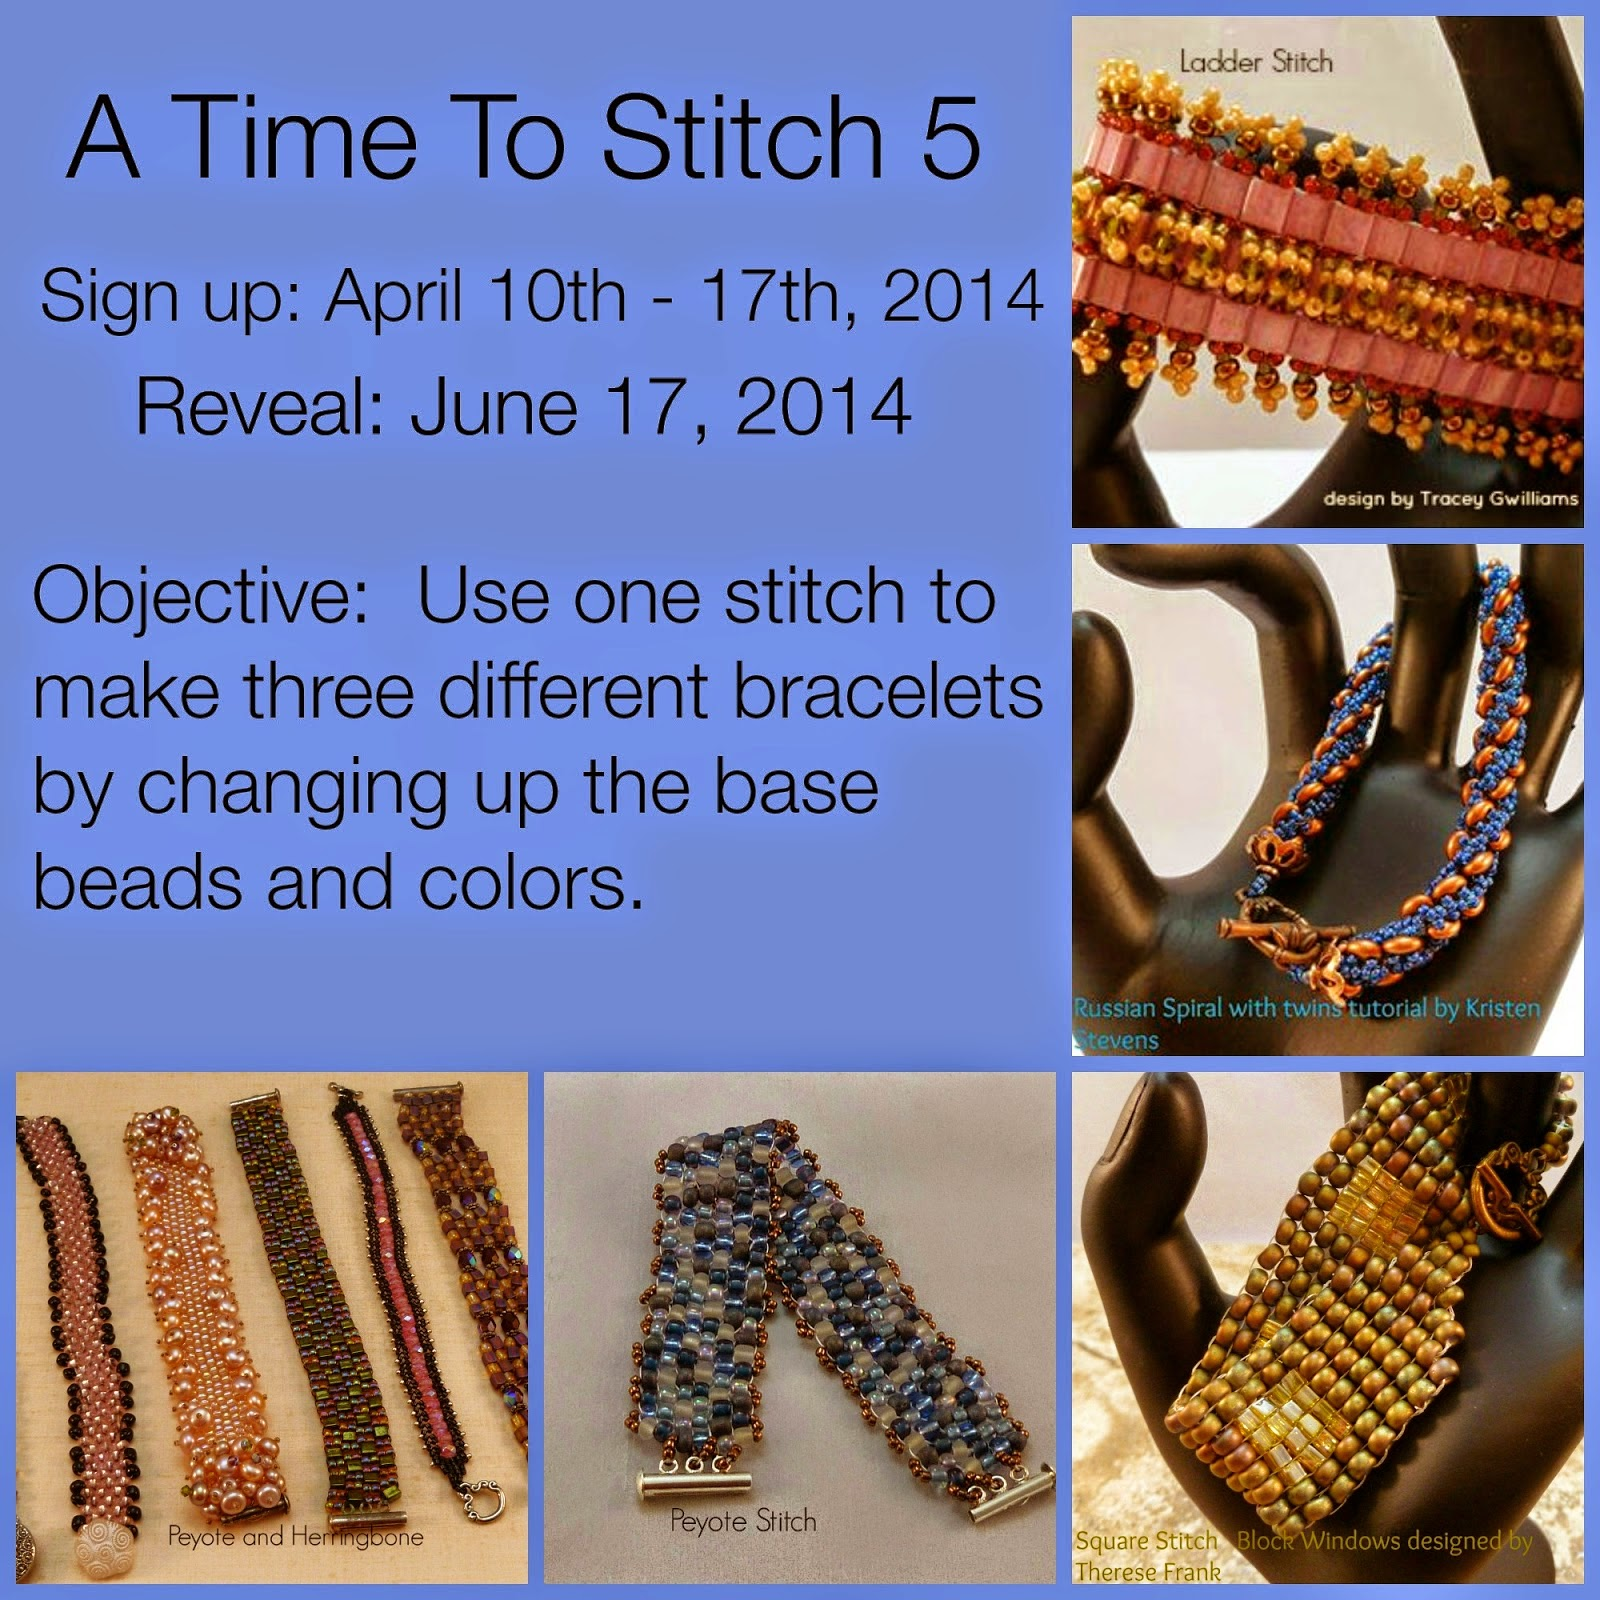 http://theresestreasures59.blogspot.de/2014/04/a-time-to-stitch-five-sign-ups.html